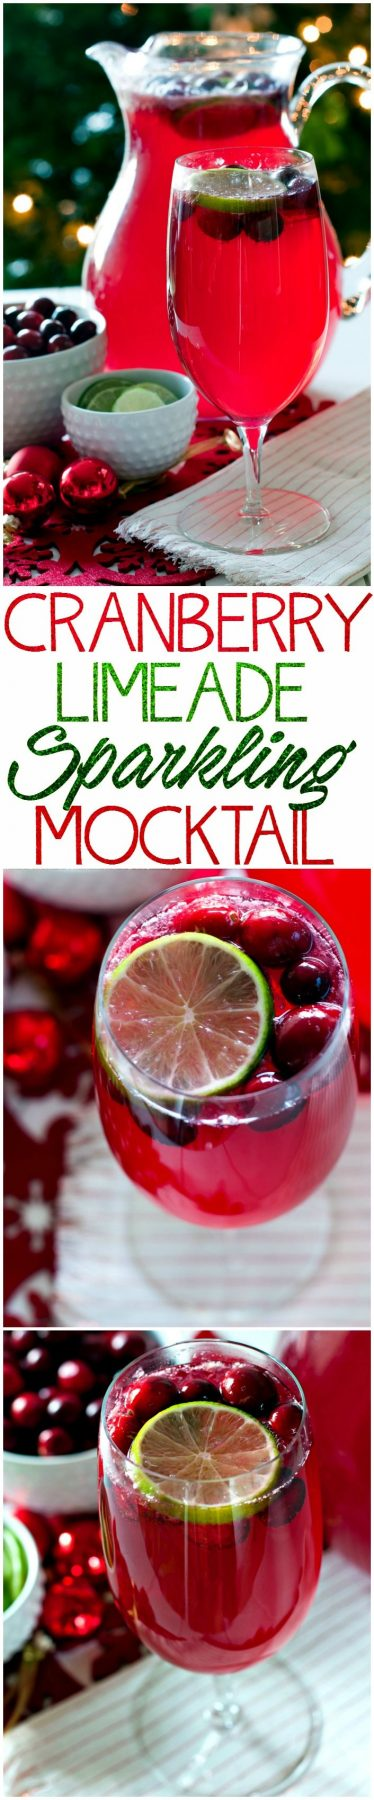 Picture collage of cranberry mocktail for Pinterest.